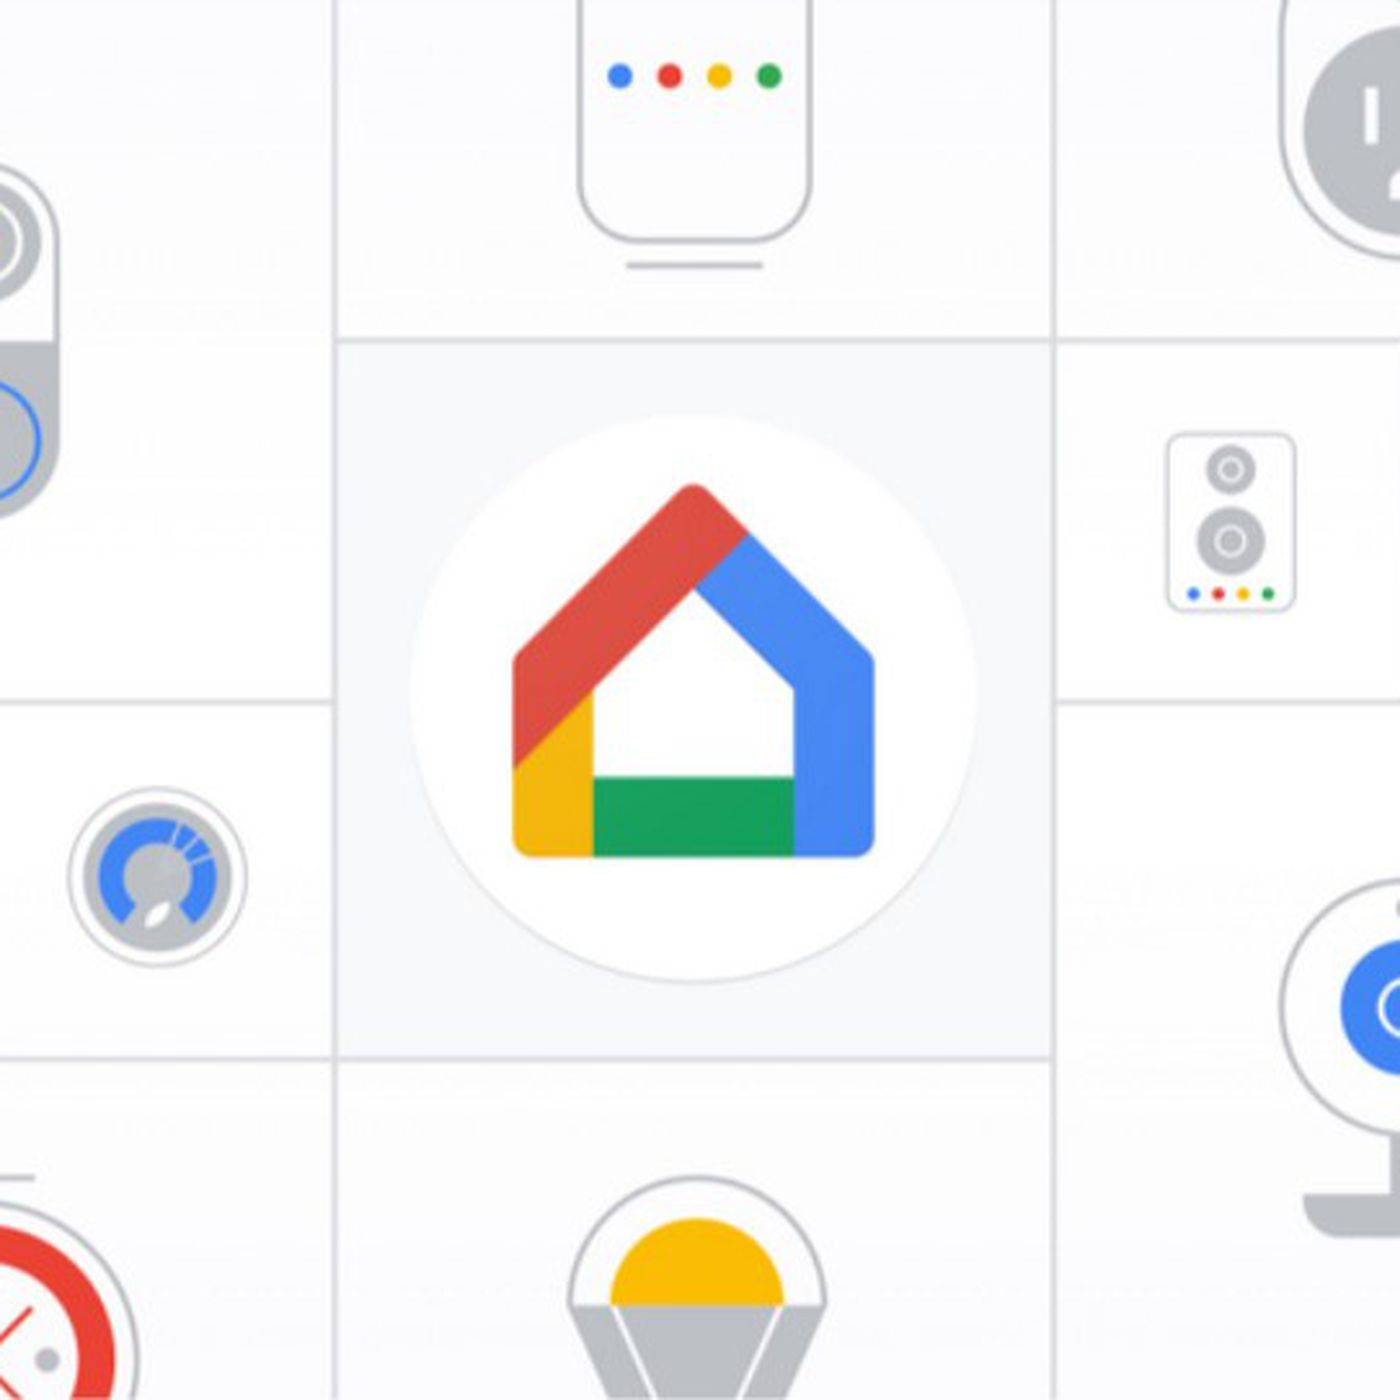 The Google Home app can now change the color of all your